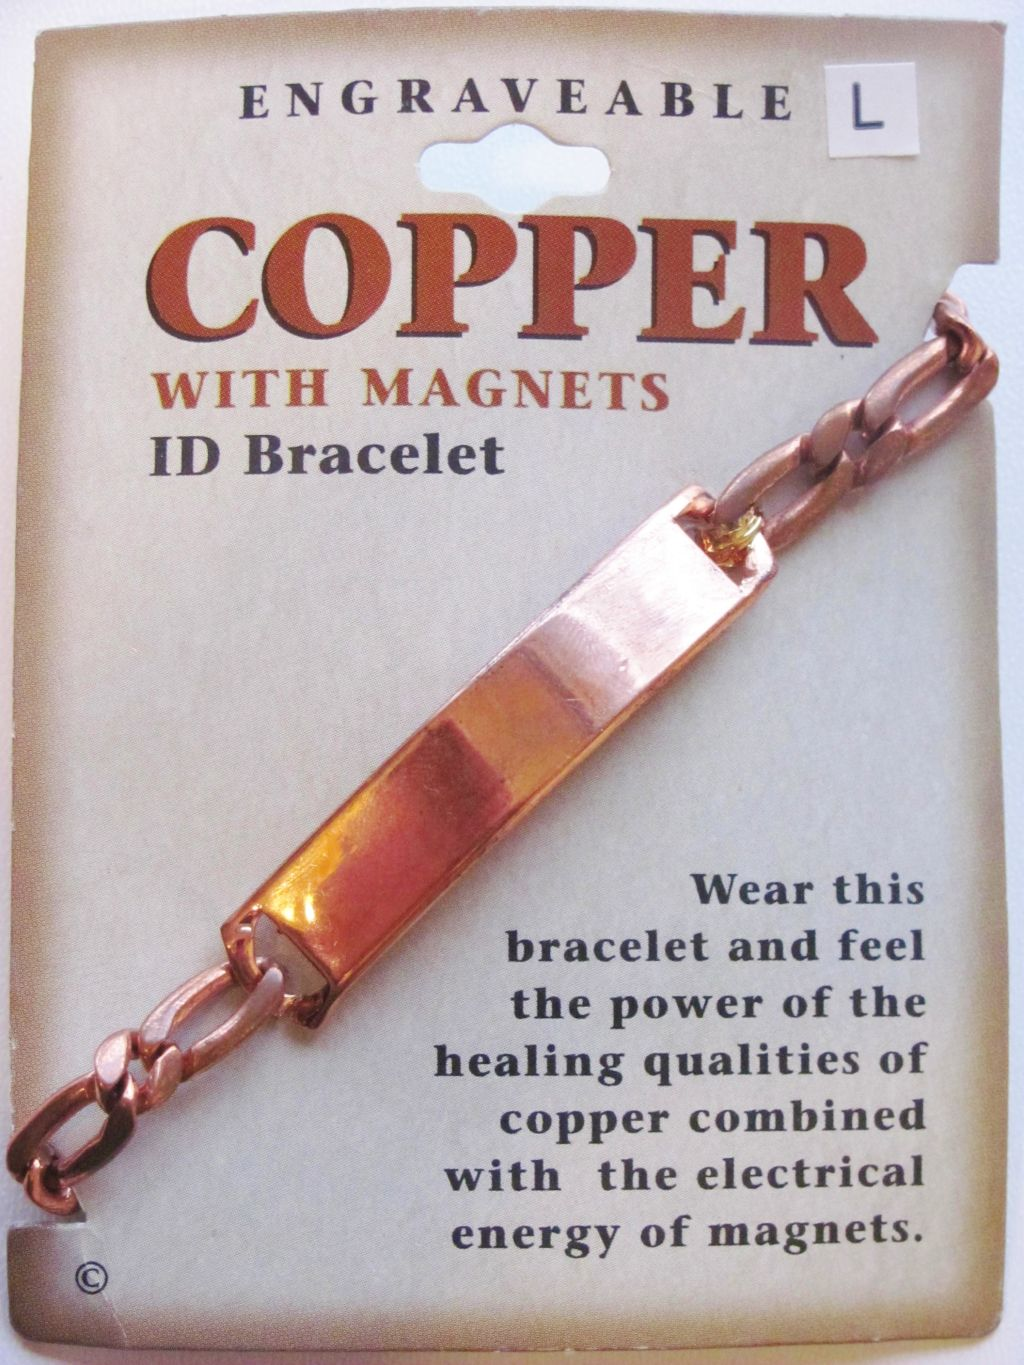 Pure Copper Link Magnetic Engraveable ID Bracelet, Treats Naturally